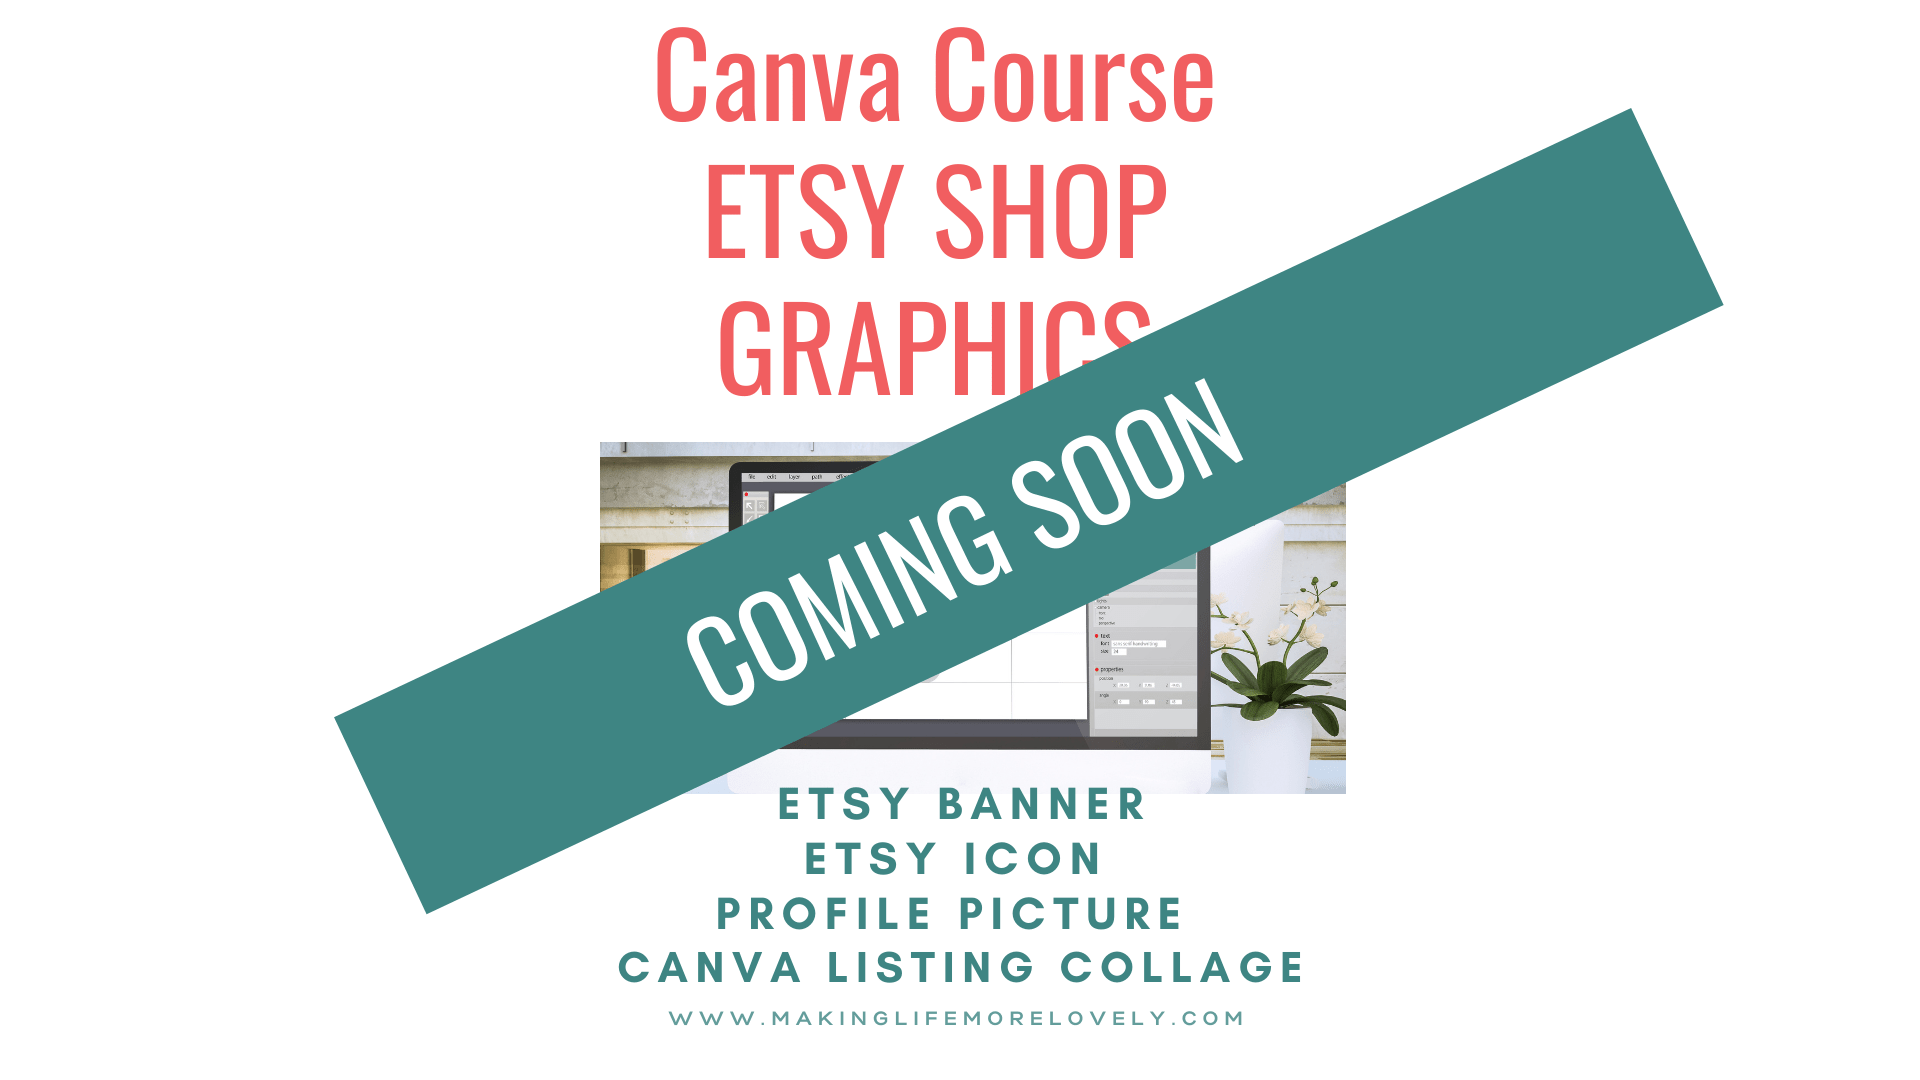 Graphic showing the Canva Course is coming soon